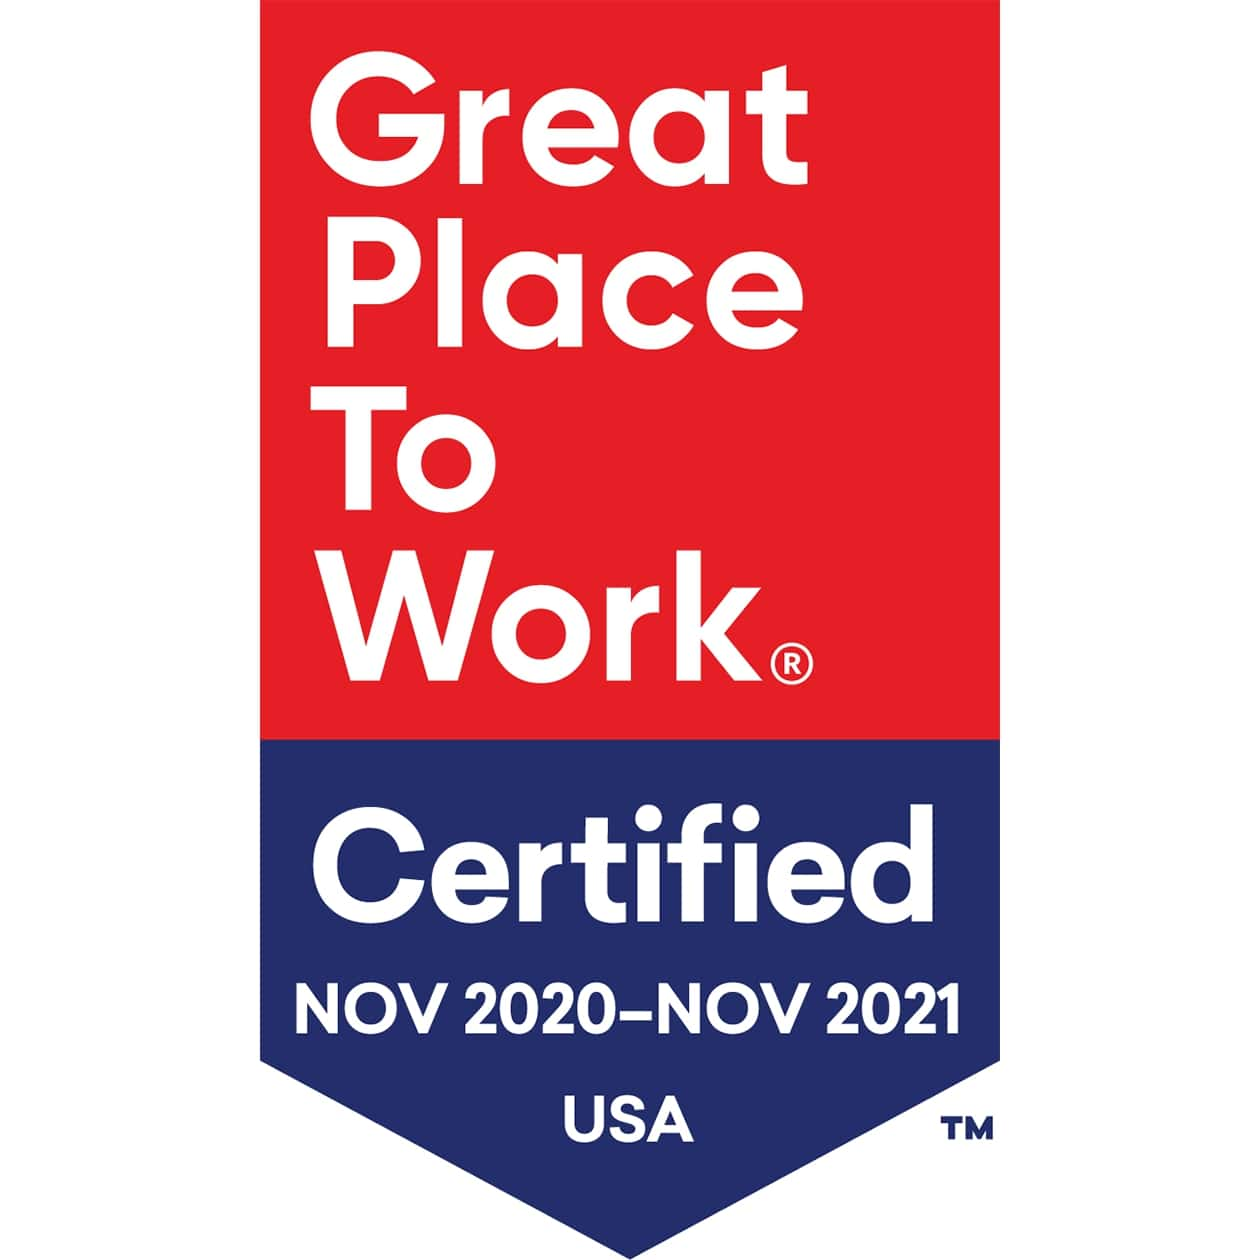 Certified Great Place to Work 2021